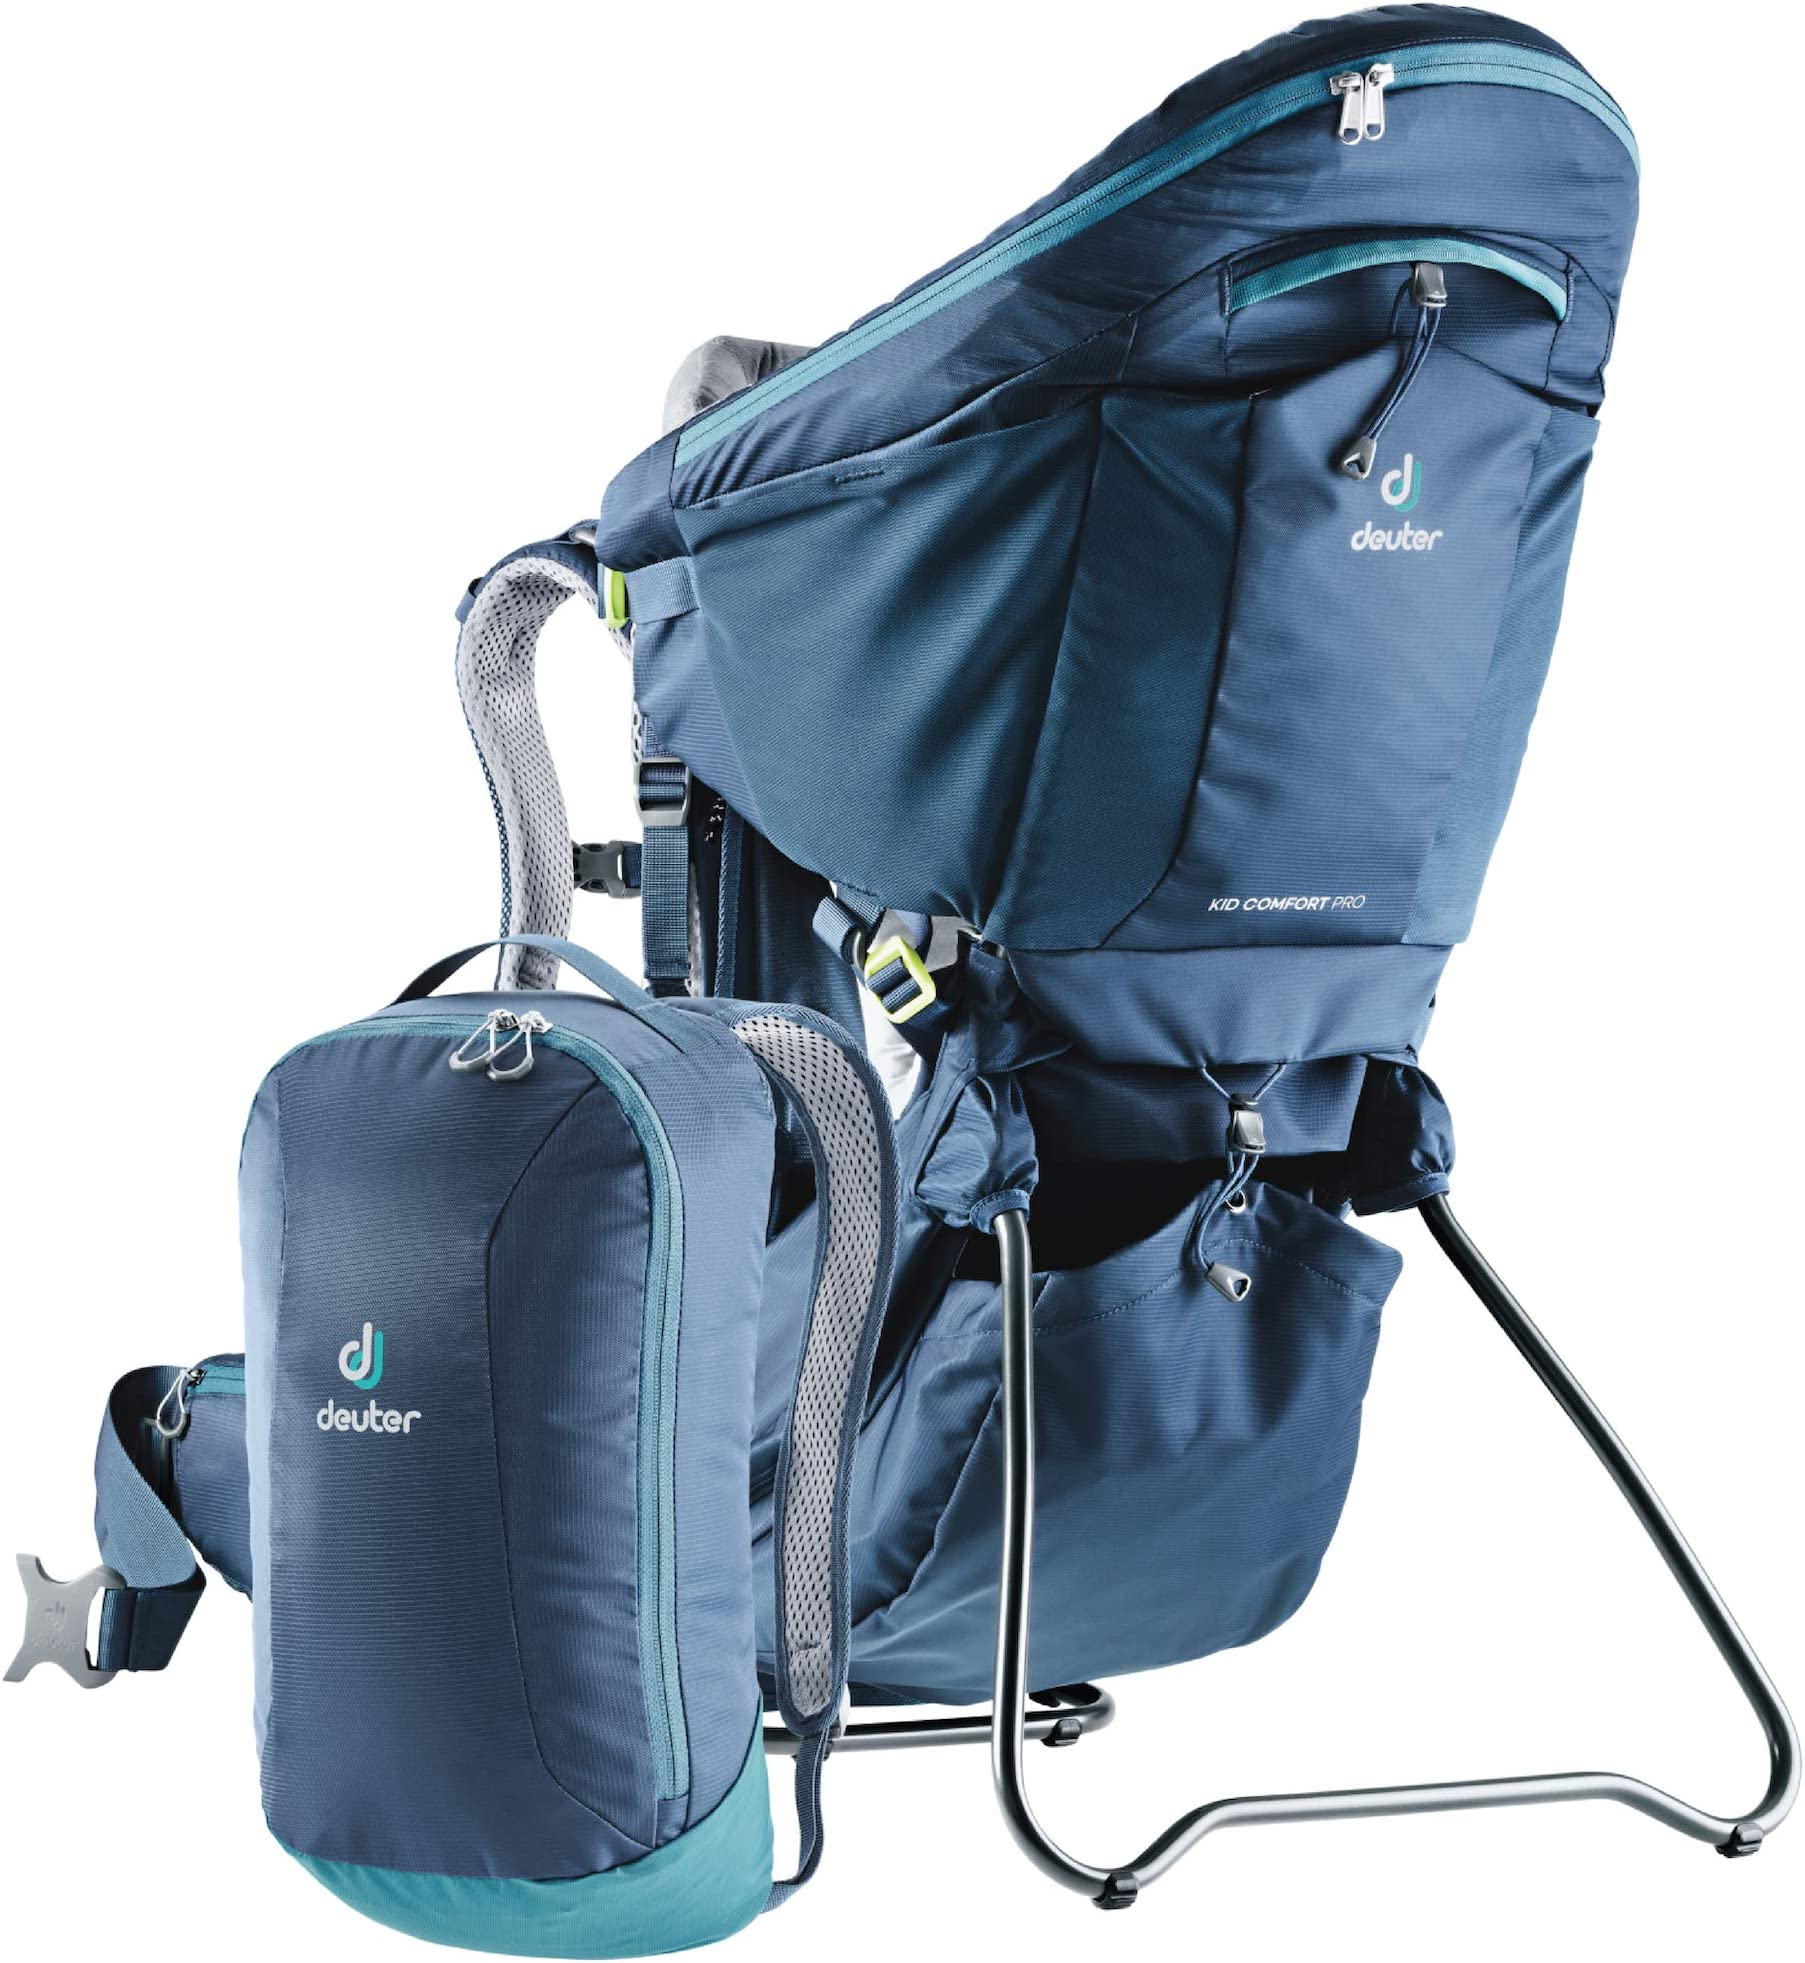 Deuter Kid Comfort Pro Child Carrier and Backpack